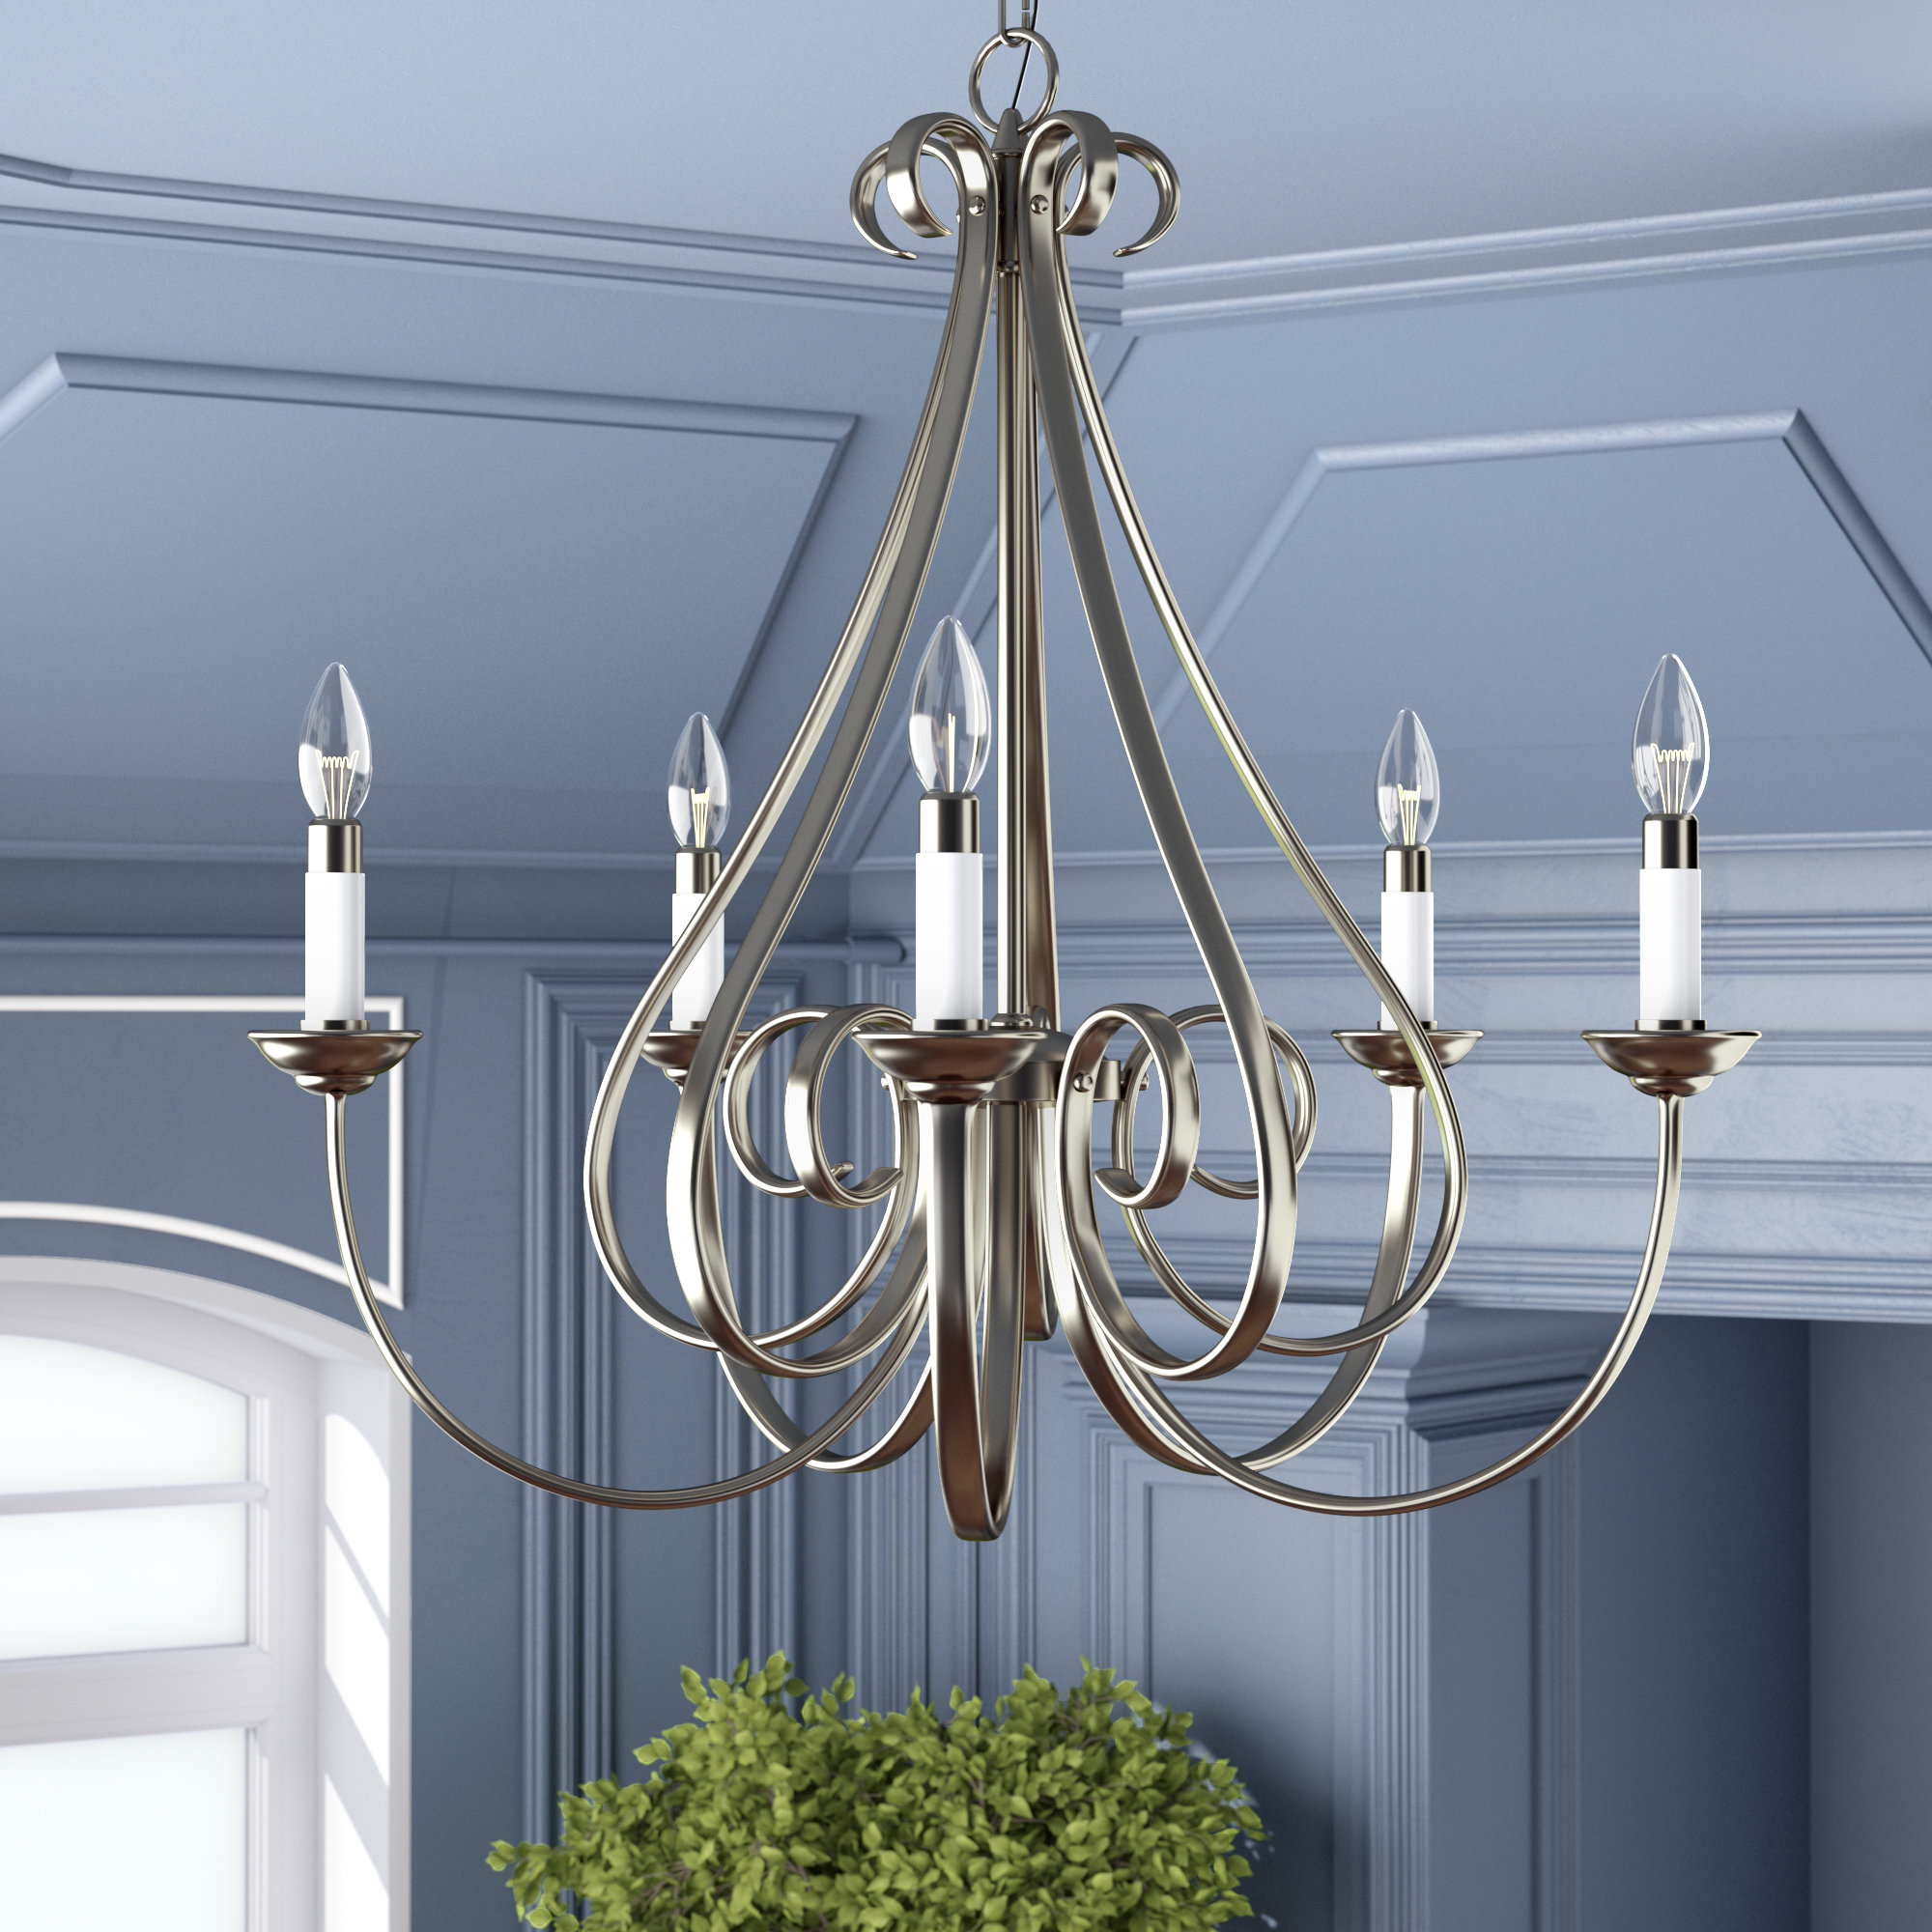 Cayman 5 Light Candle Style Chandelier Within Berger 5 Light Candle Style Chandeliers (View 5 of 30)